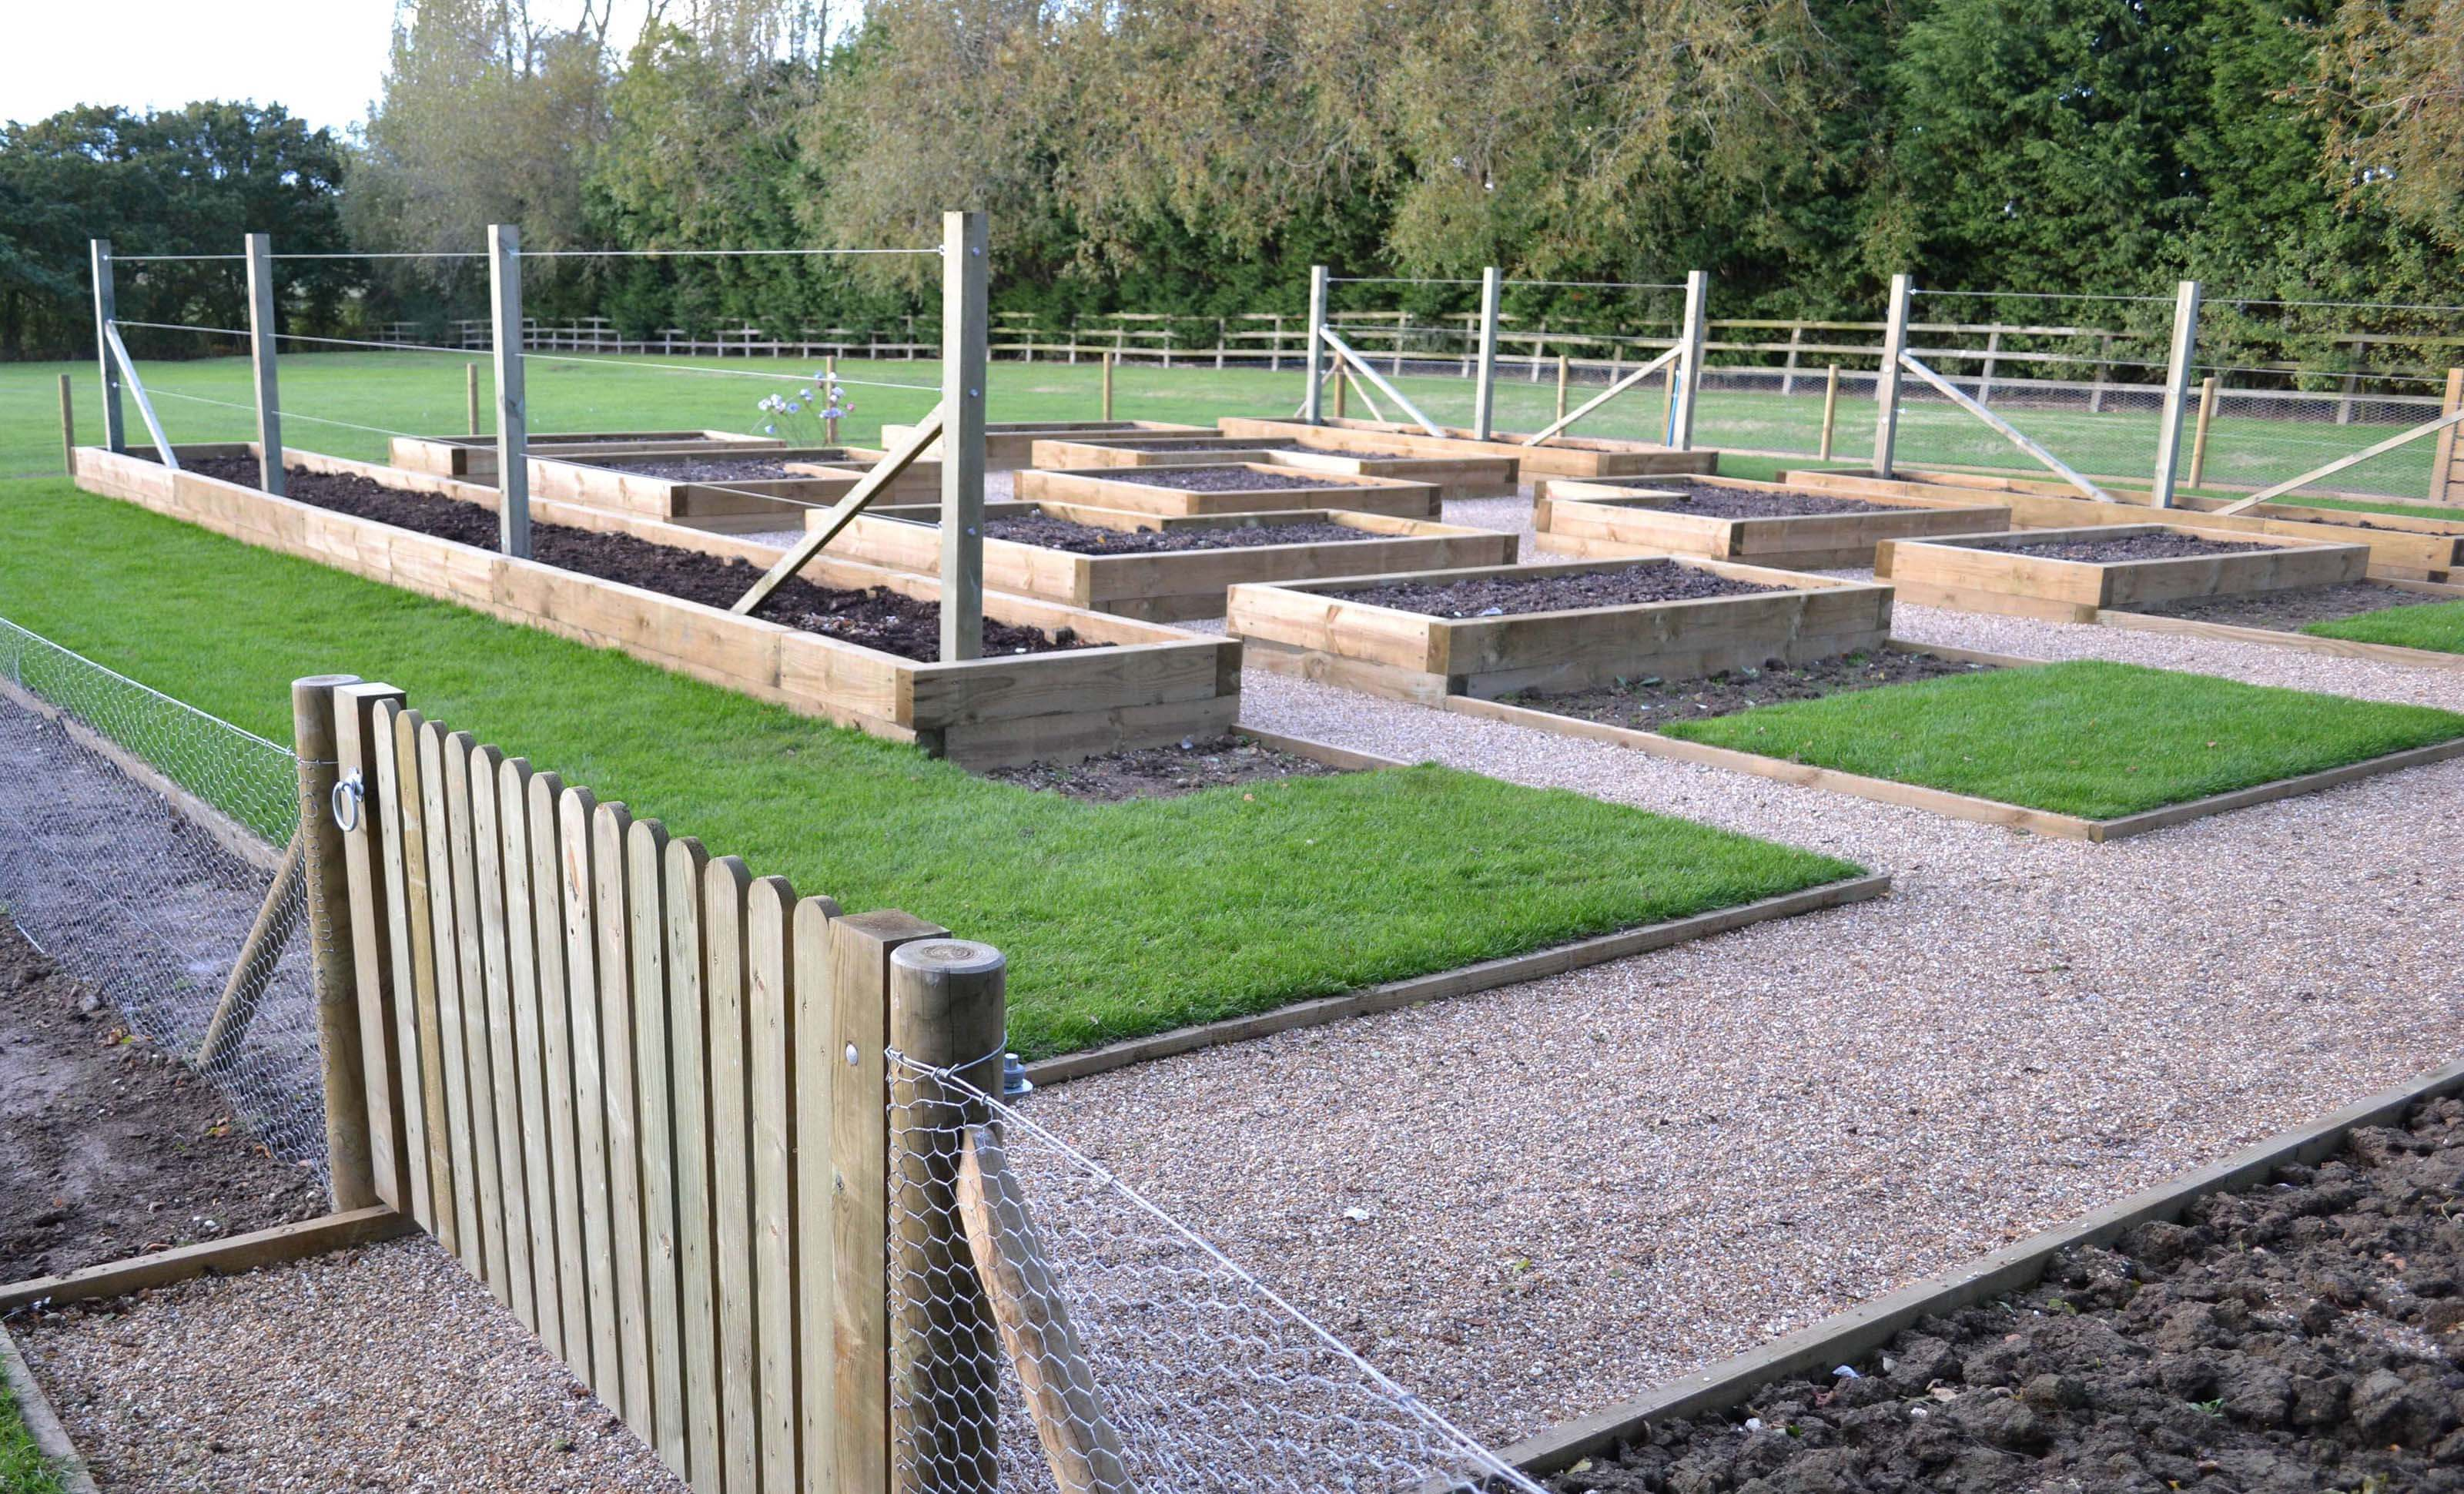 completed potager garden showing picket fence gate detail